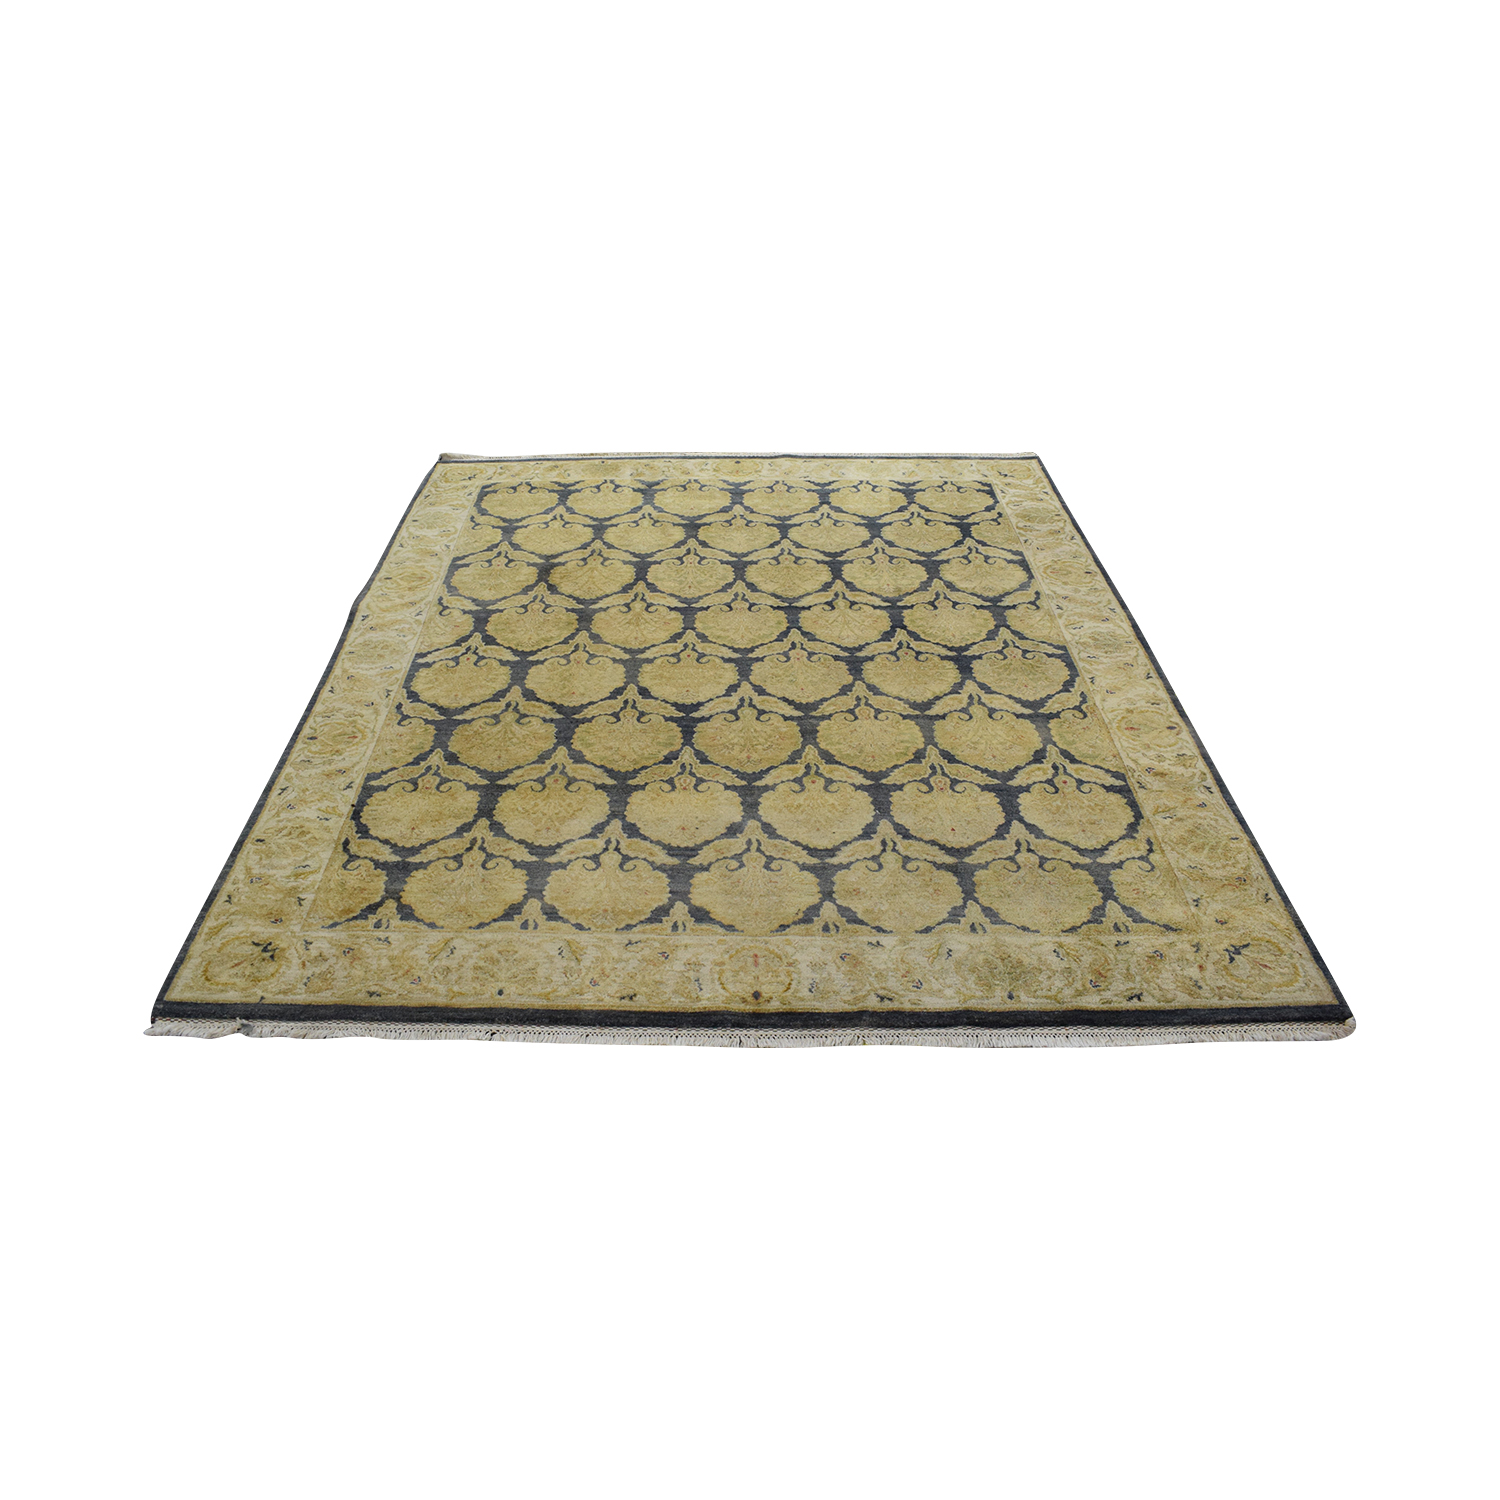 buy Restoration Hardware Patterned Area Rug Restoration Hardware Rugs